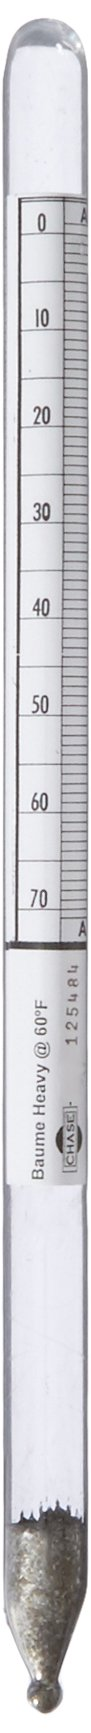 Chase Instruments BH14 Baume Precision Hydrometer, 0 to 70 Range, 0.10mm Interval, 300mm Length